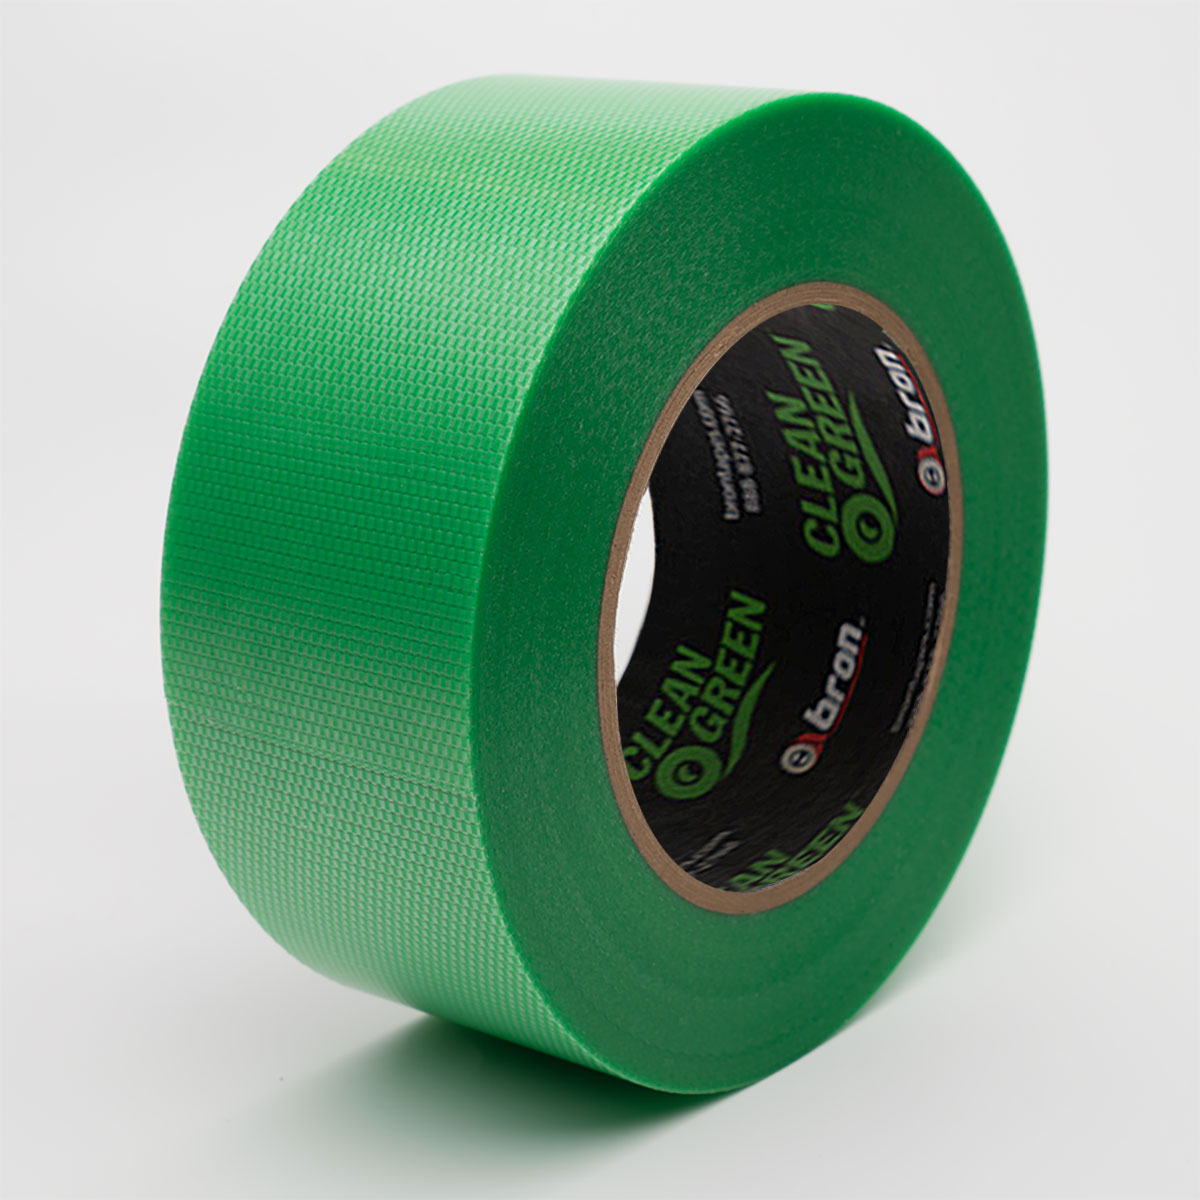 Premium Masking, Surface Protection, and Repair Tape